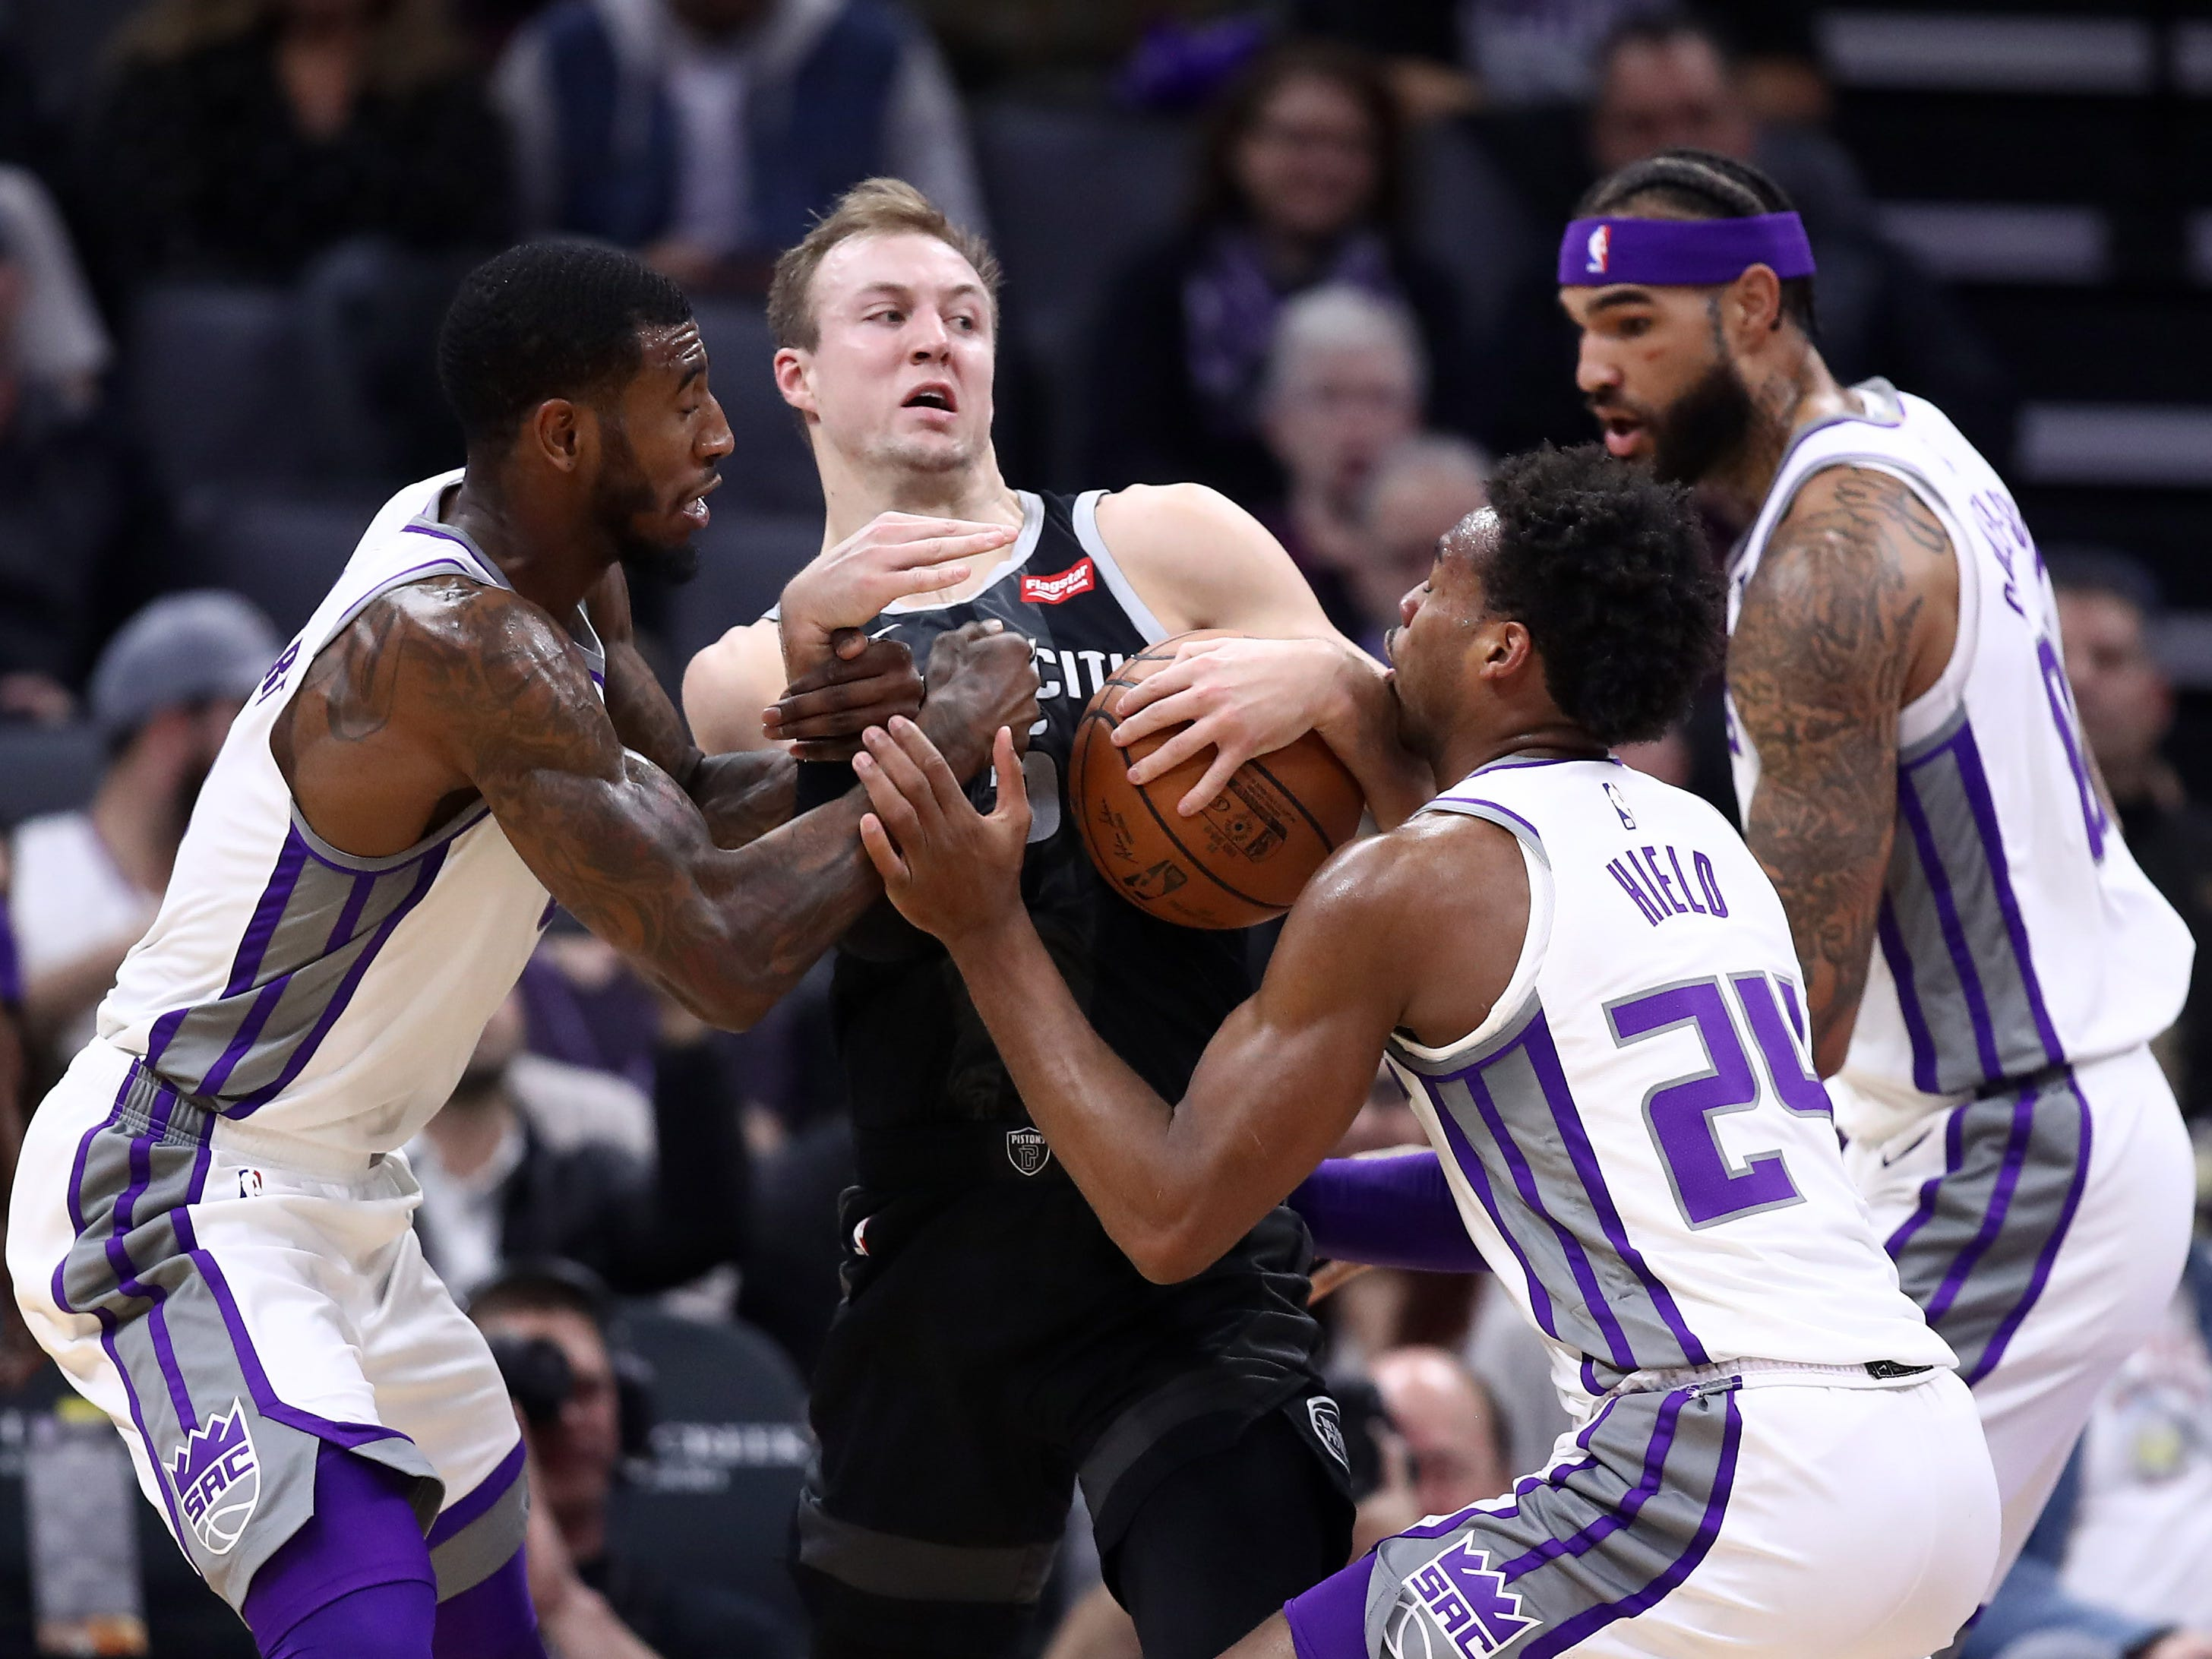 Luke Kennard #5 of the Detroit Pistons is surrounded by Iman Shumpert #9 and Buddy Hield #24 of the Sacramento Kings at Golden 1 Center on January 10, 2019 in Sacramento, California.